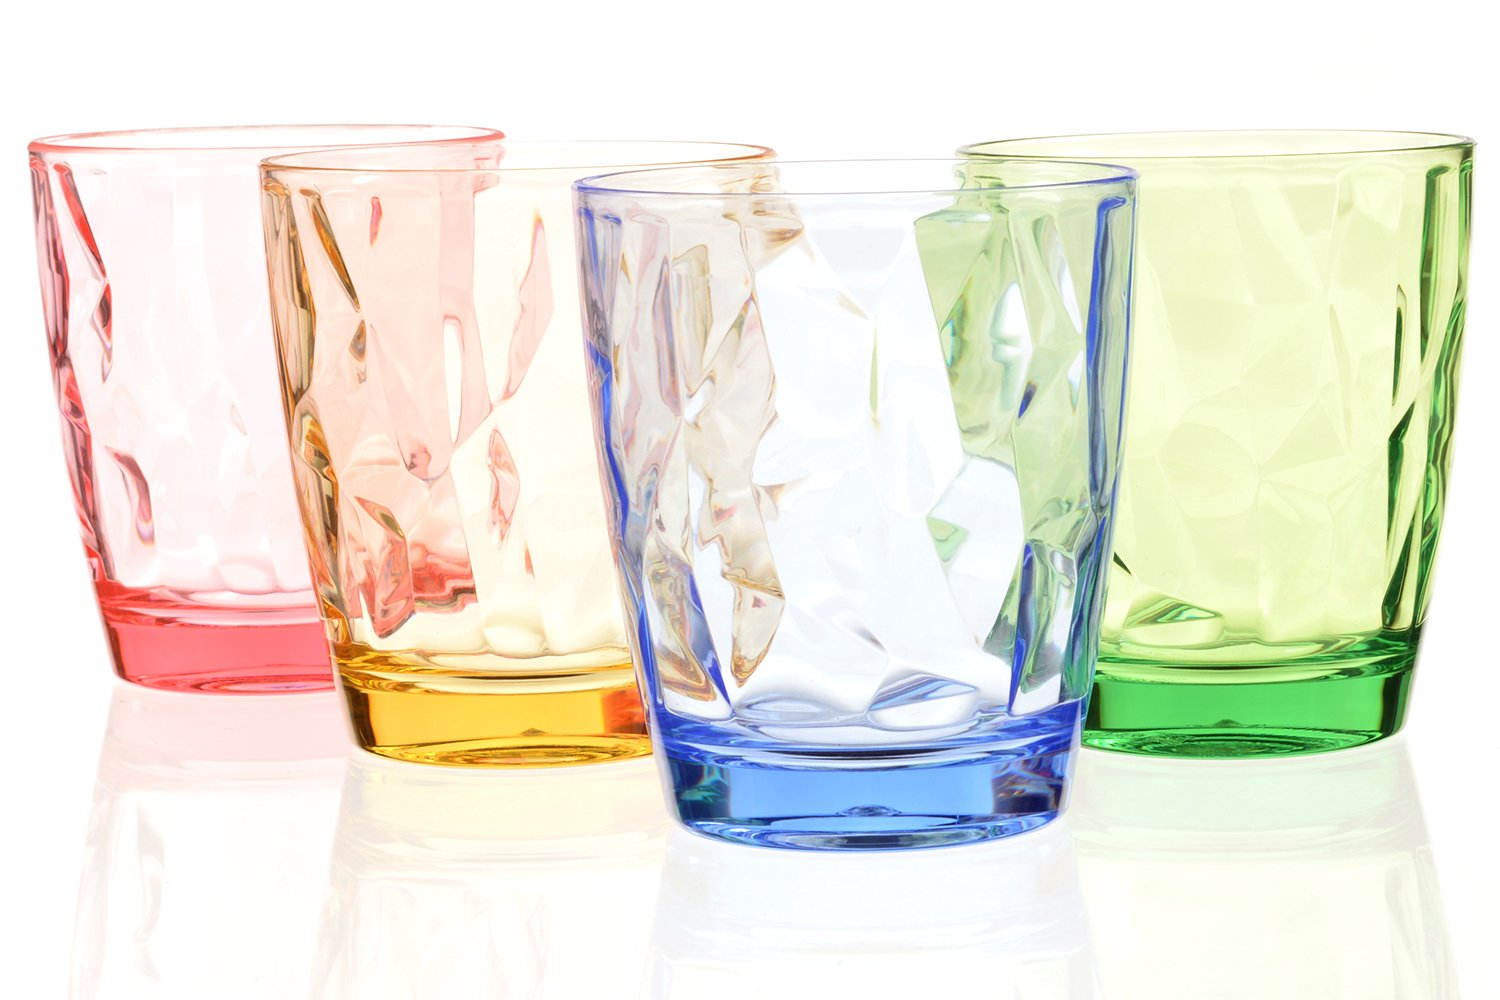 6ce0fc5d3fb Drinking Glasses Set Acrylic Glassware for Kids 11oz Colored Plastic  Tumblers Cups Picnic Water Glasses Unbreakable